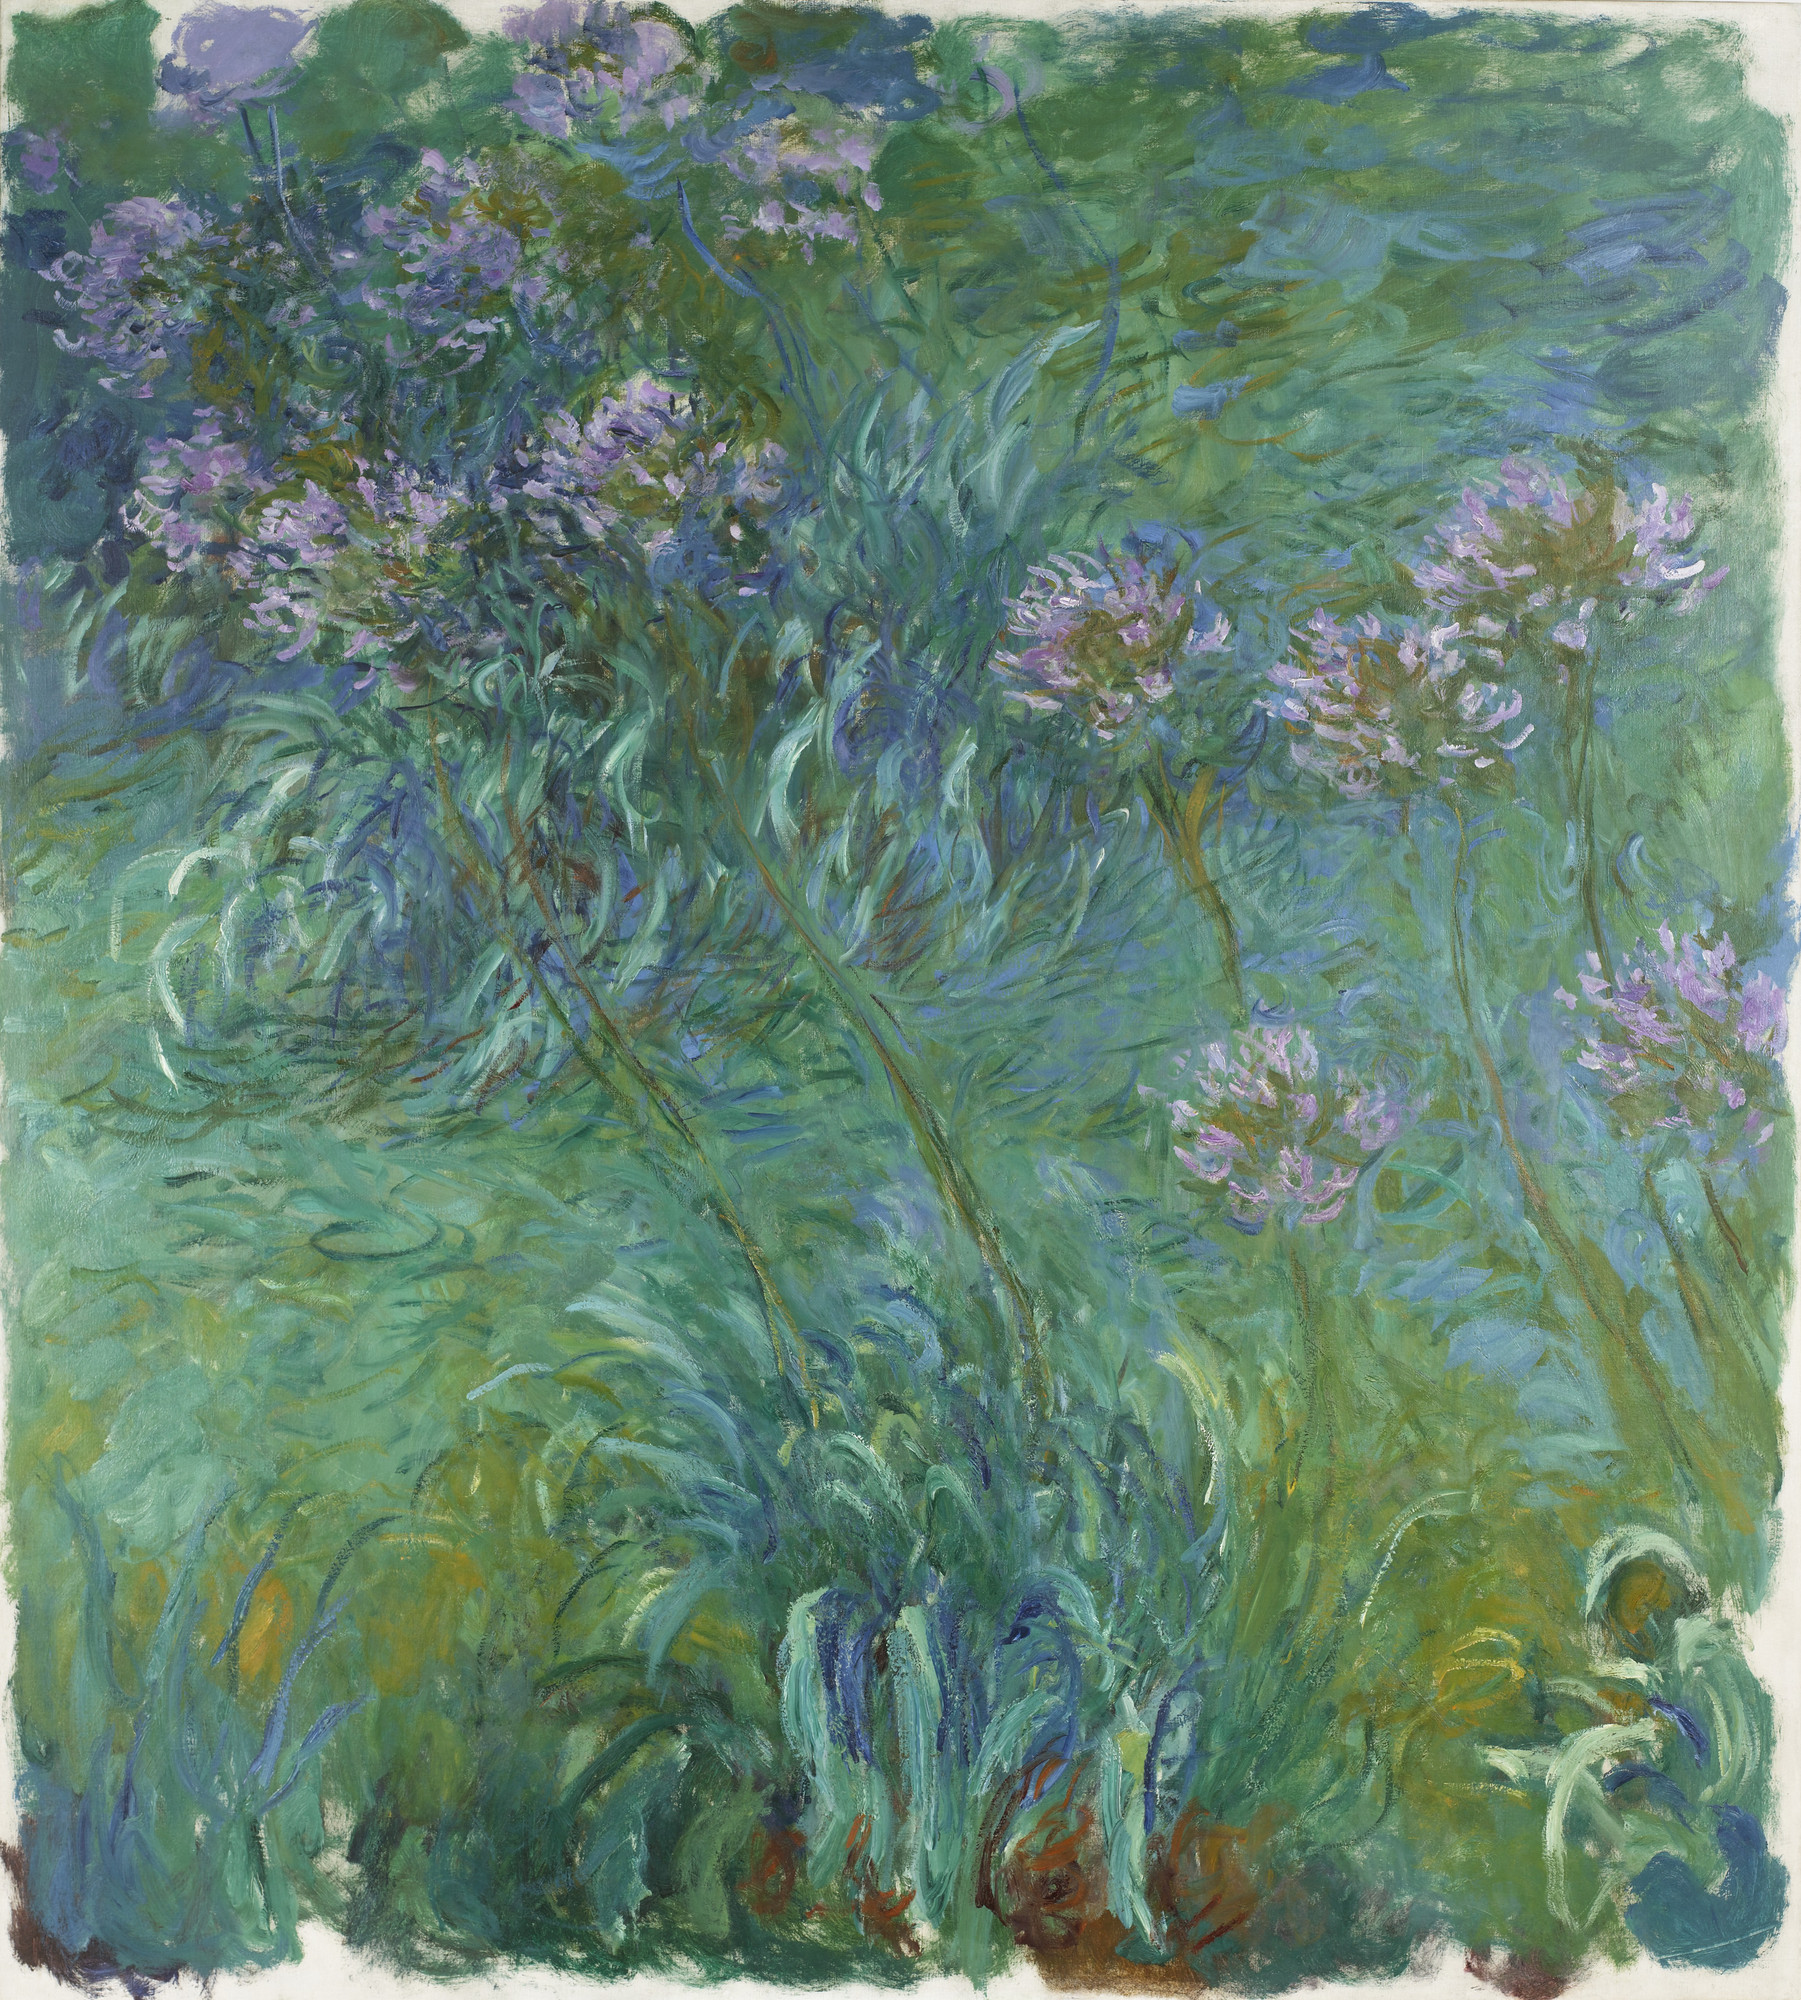 Selected works from the exhibition Monet's Water Lilies | MoMA